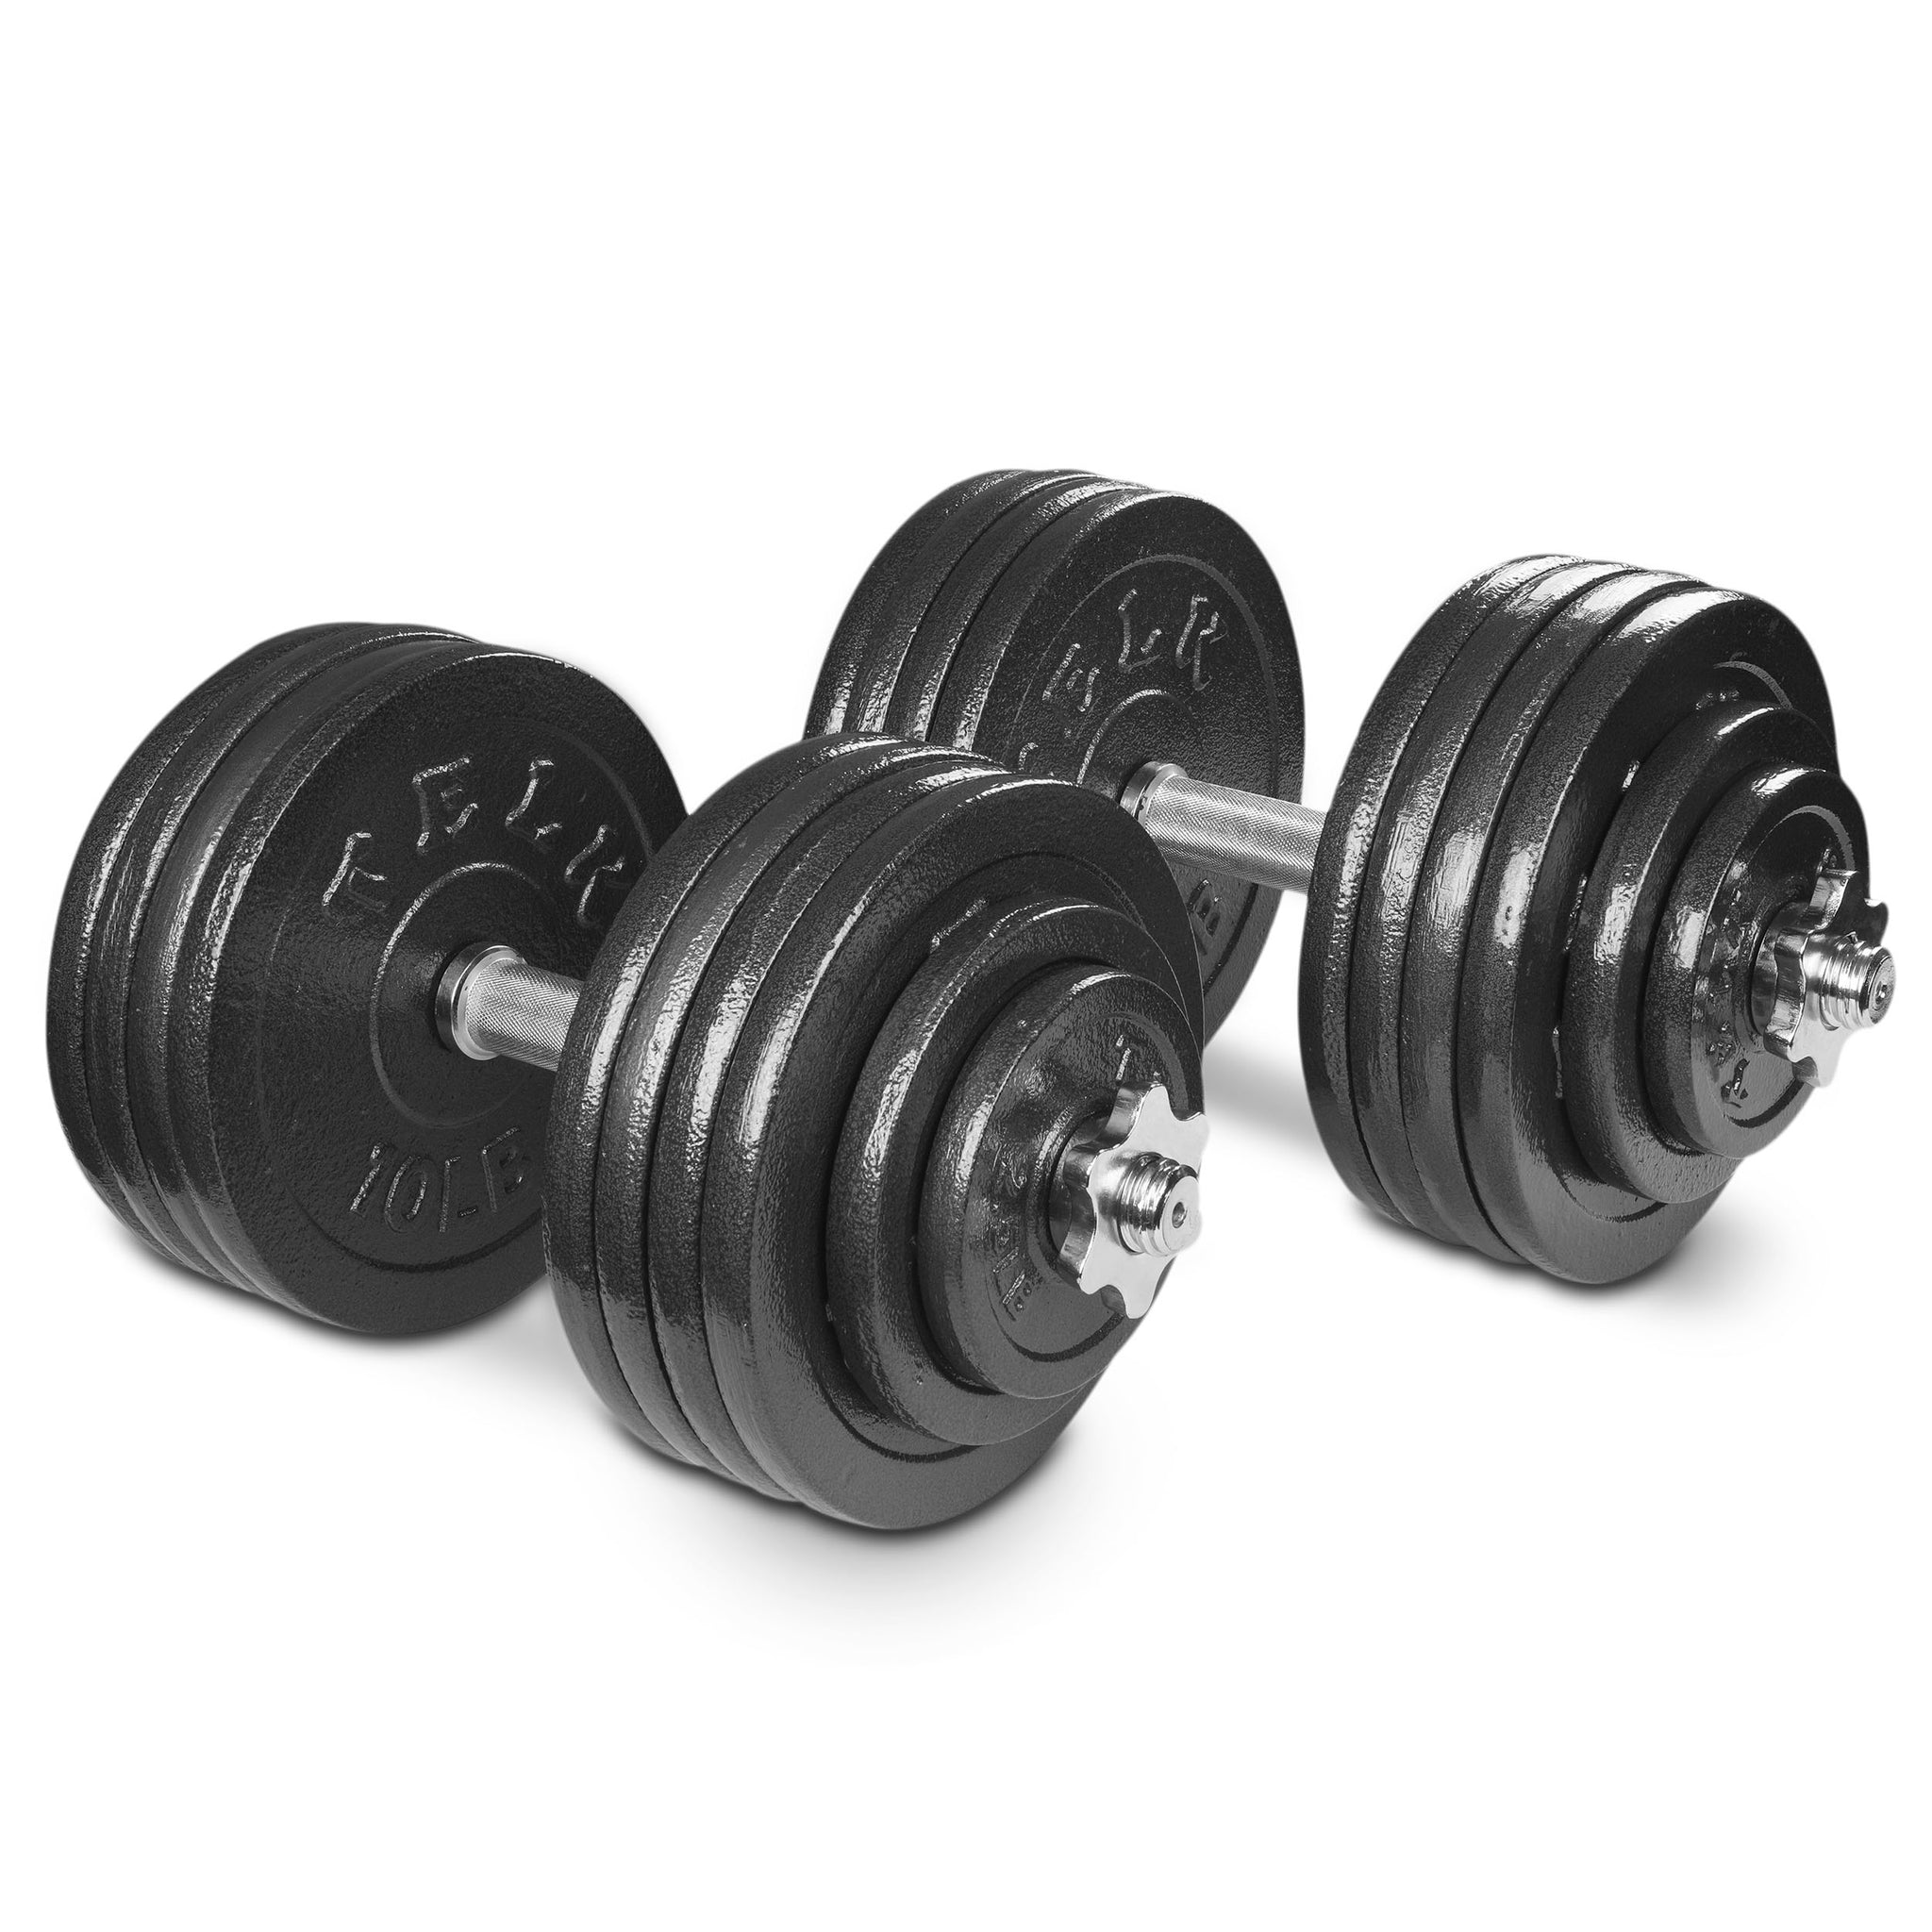 Adjustable Dumbbells 200 lbs